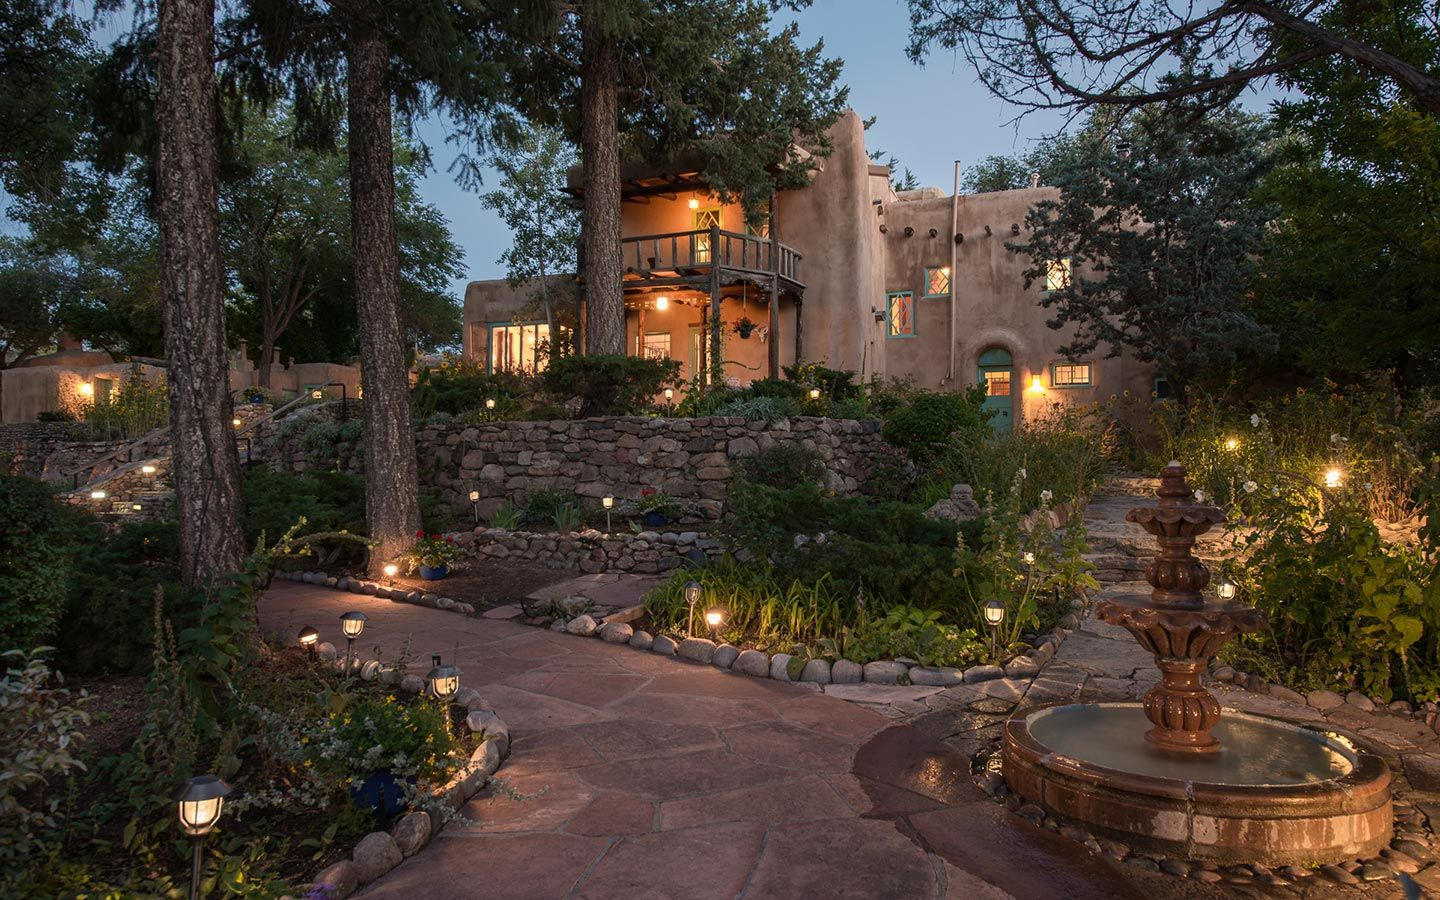 Inn of the Turquoise Bear Santa Fe, NM Bed and